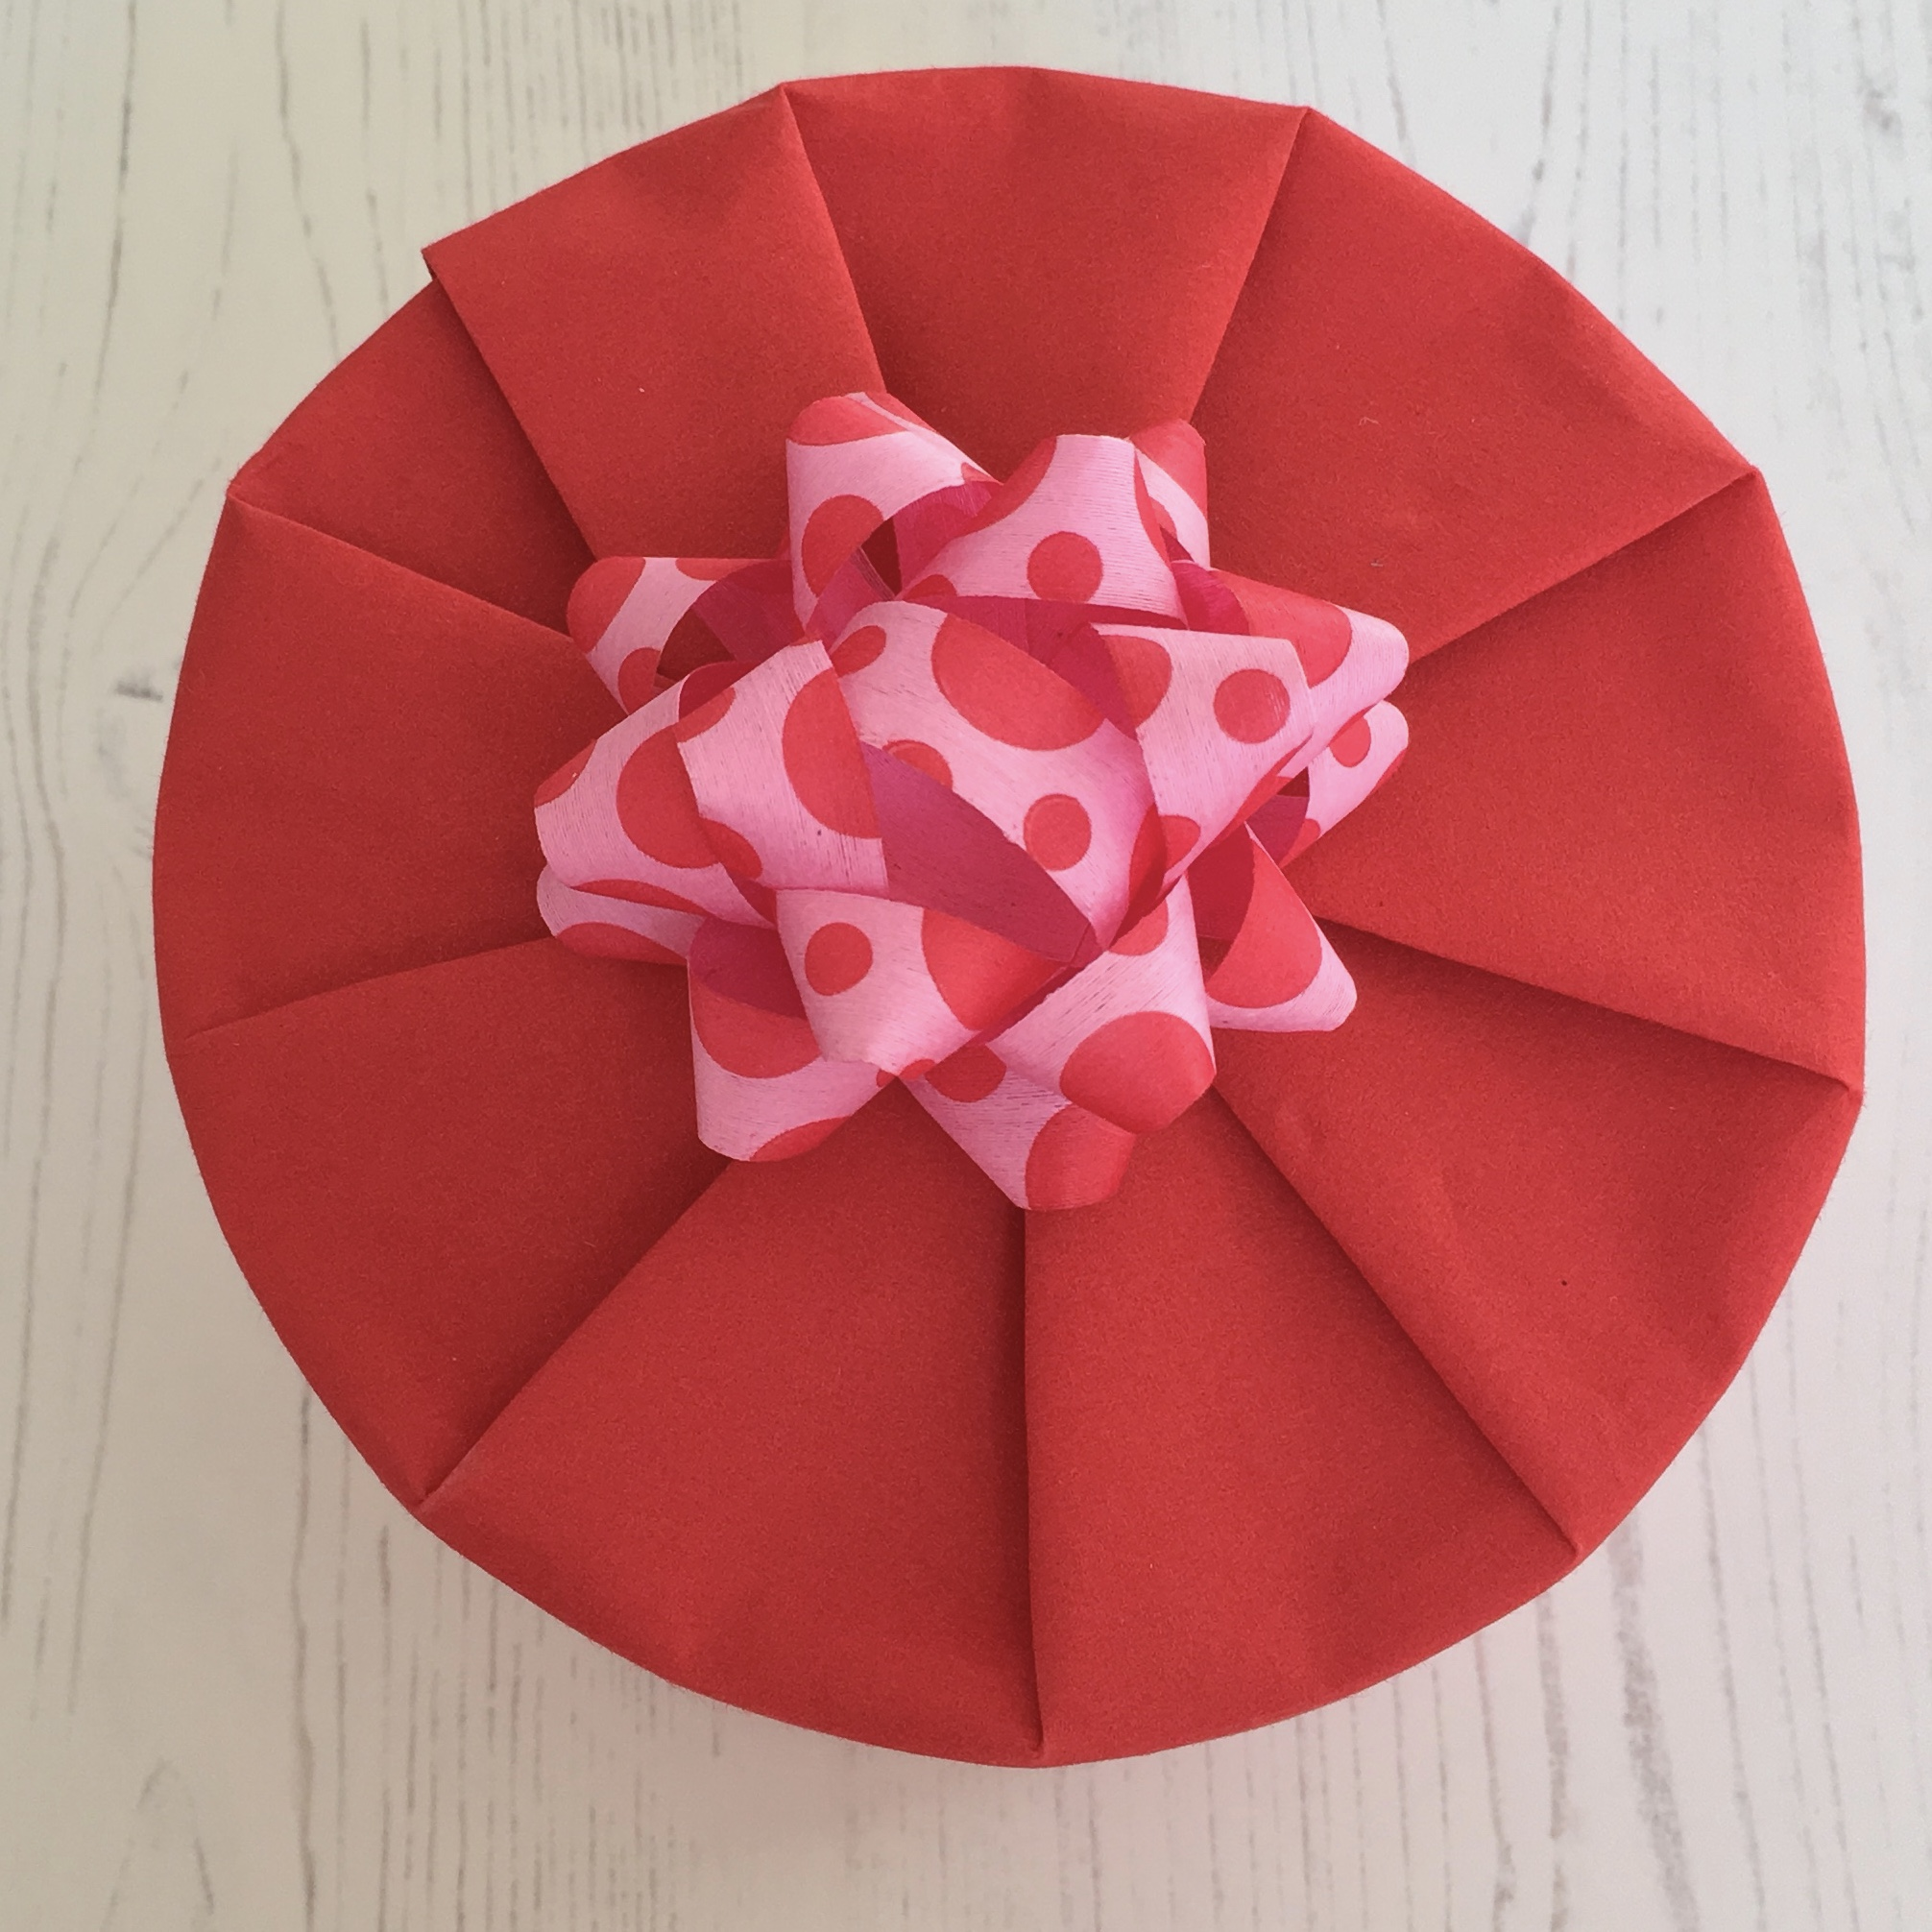 A circular item wrapped in red giftwrap, with a pleated effect and a pink/red paper bow on top